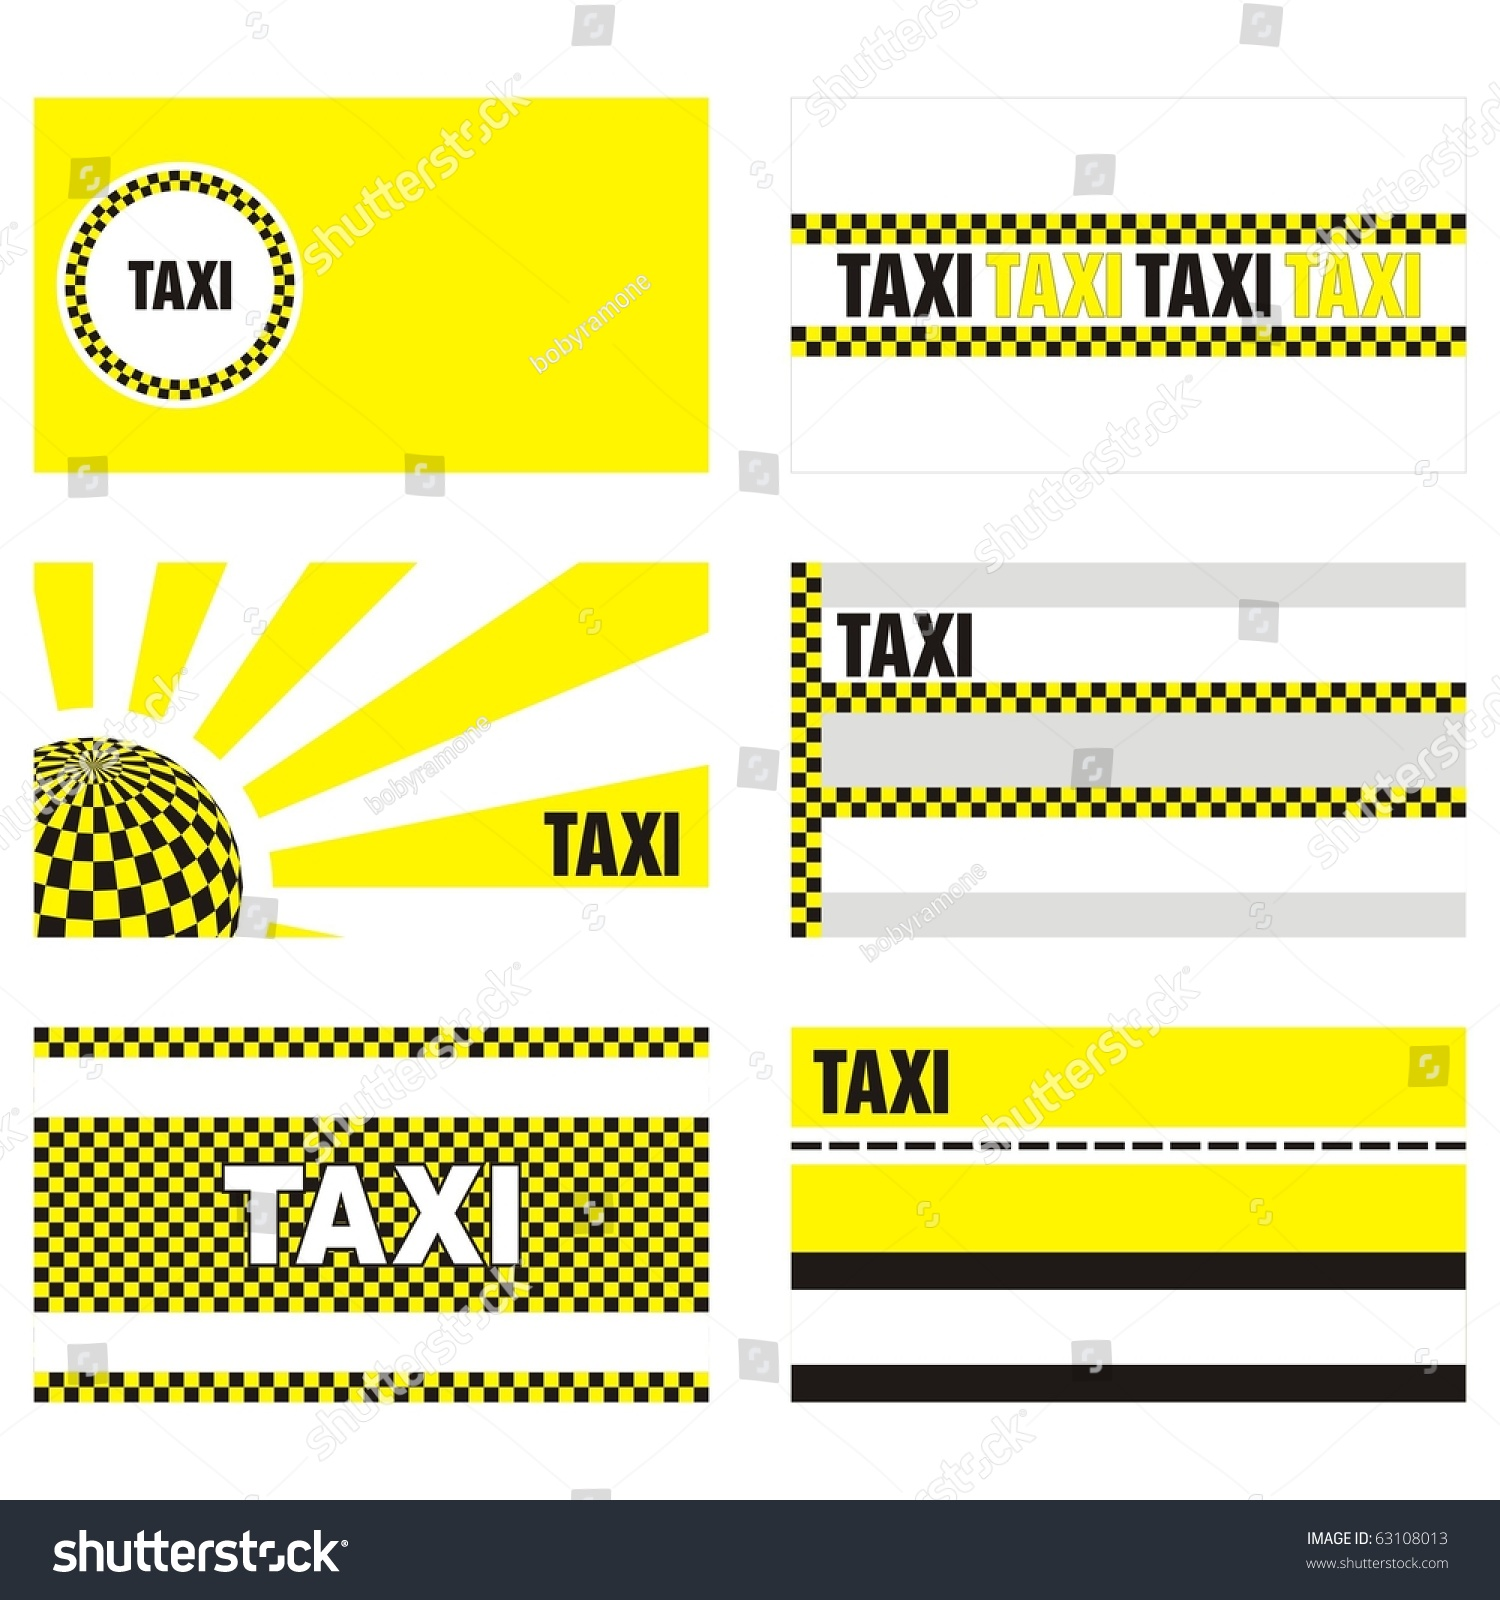 Taxi business cards 90 x 50 stock vector 2018 63108013 shutterstock taxi business cards 90 x 50 mm reheart Choice Image